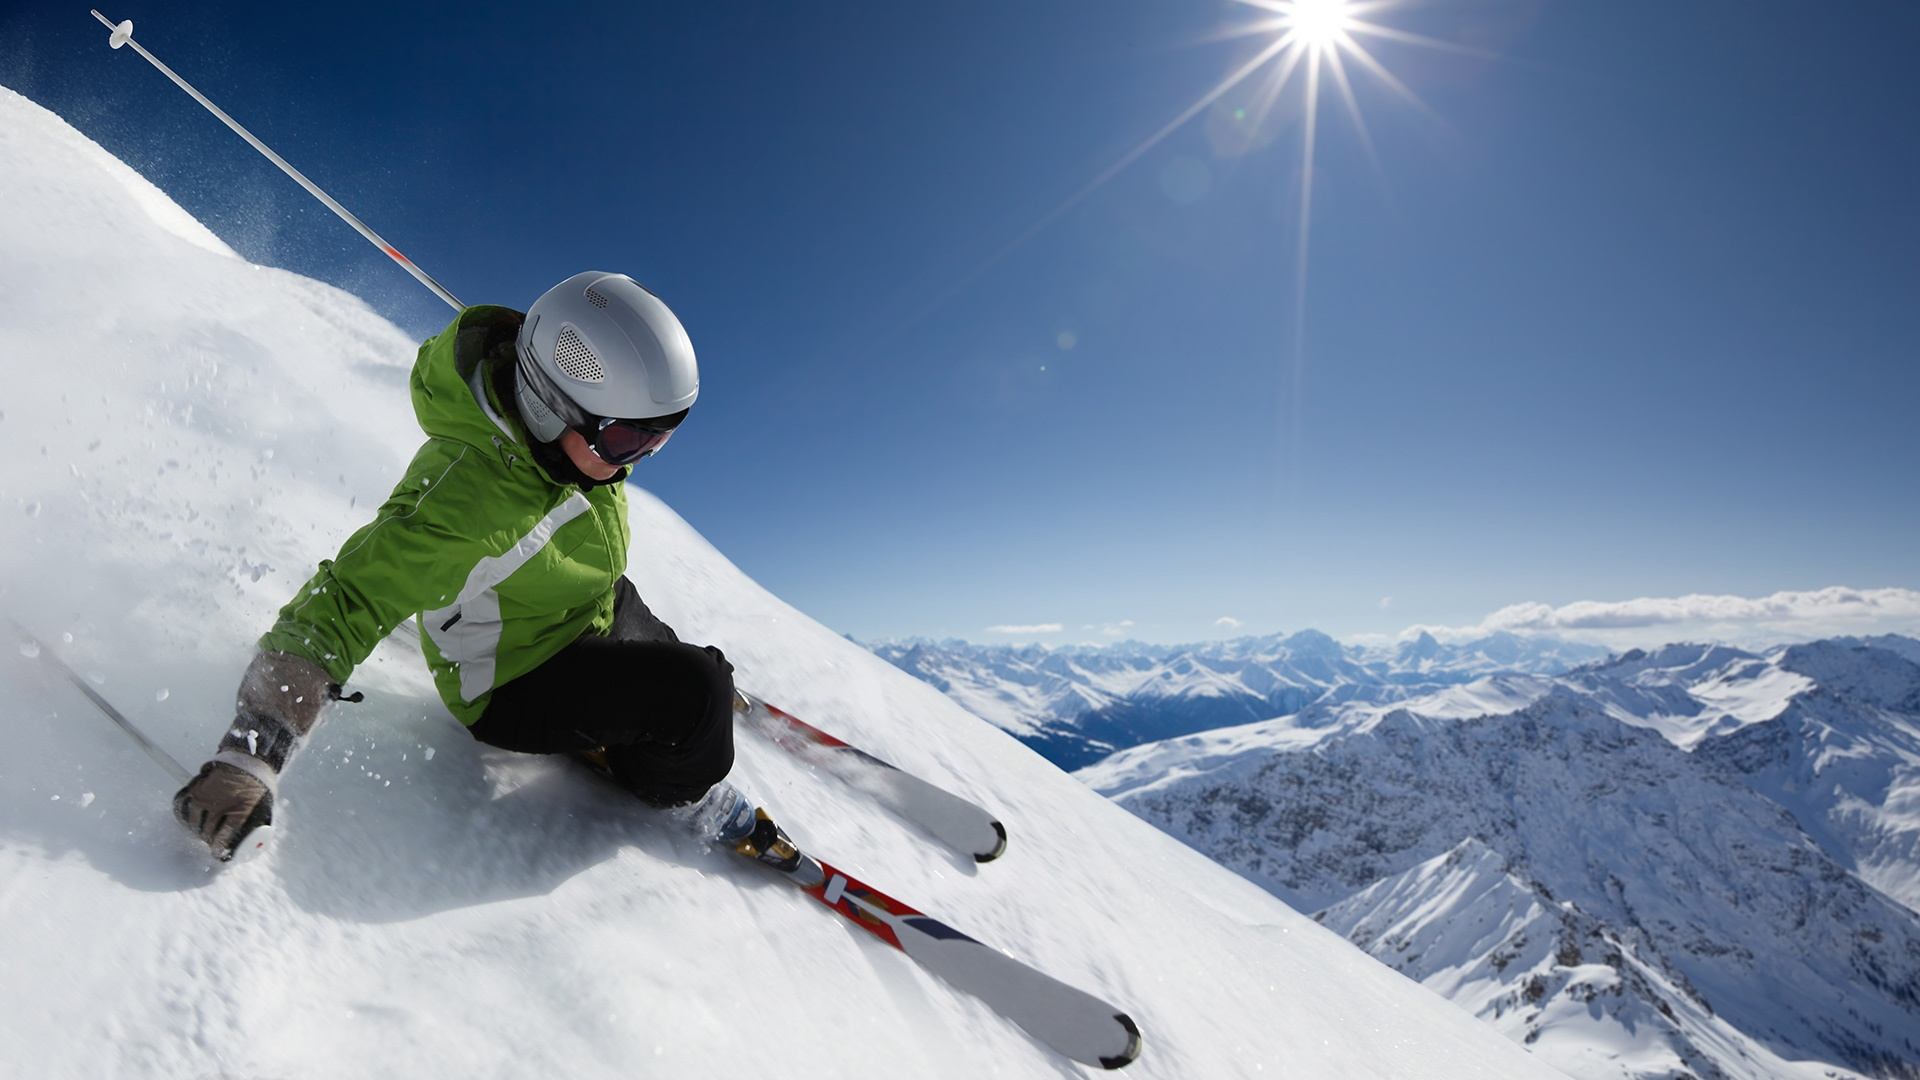 Skiing Full HD Wallpaper And Background Image